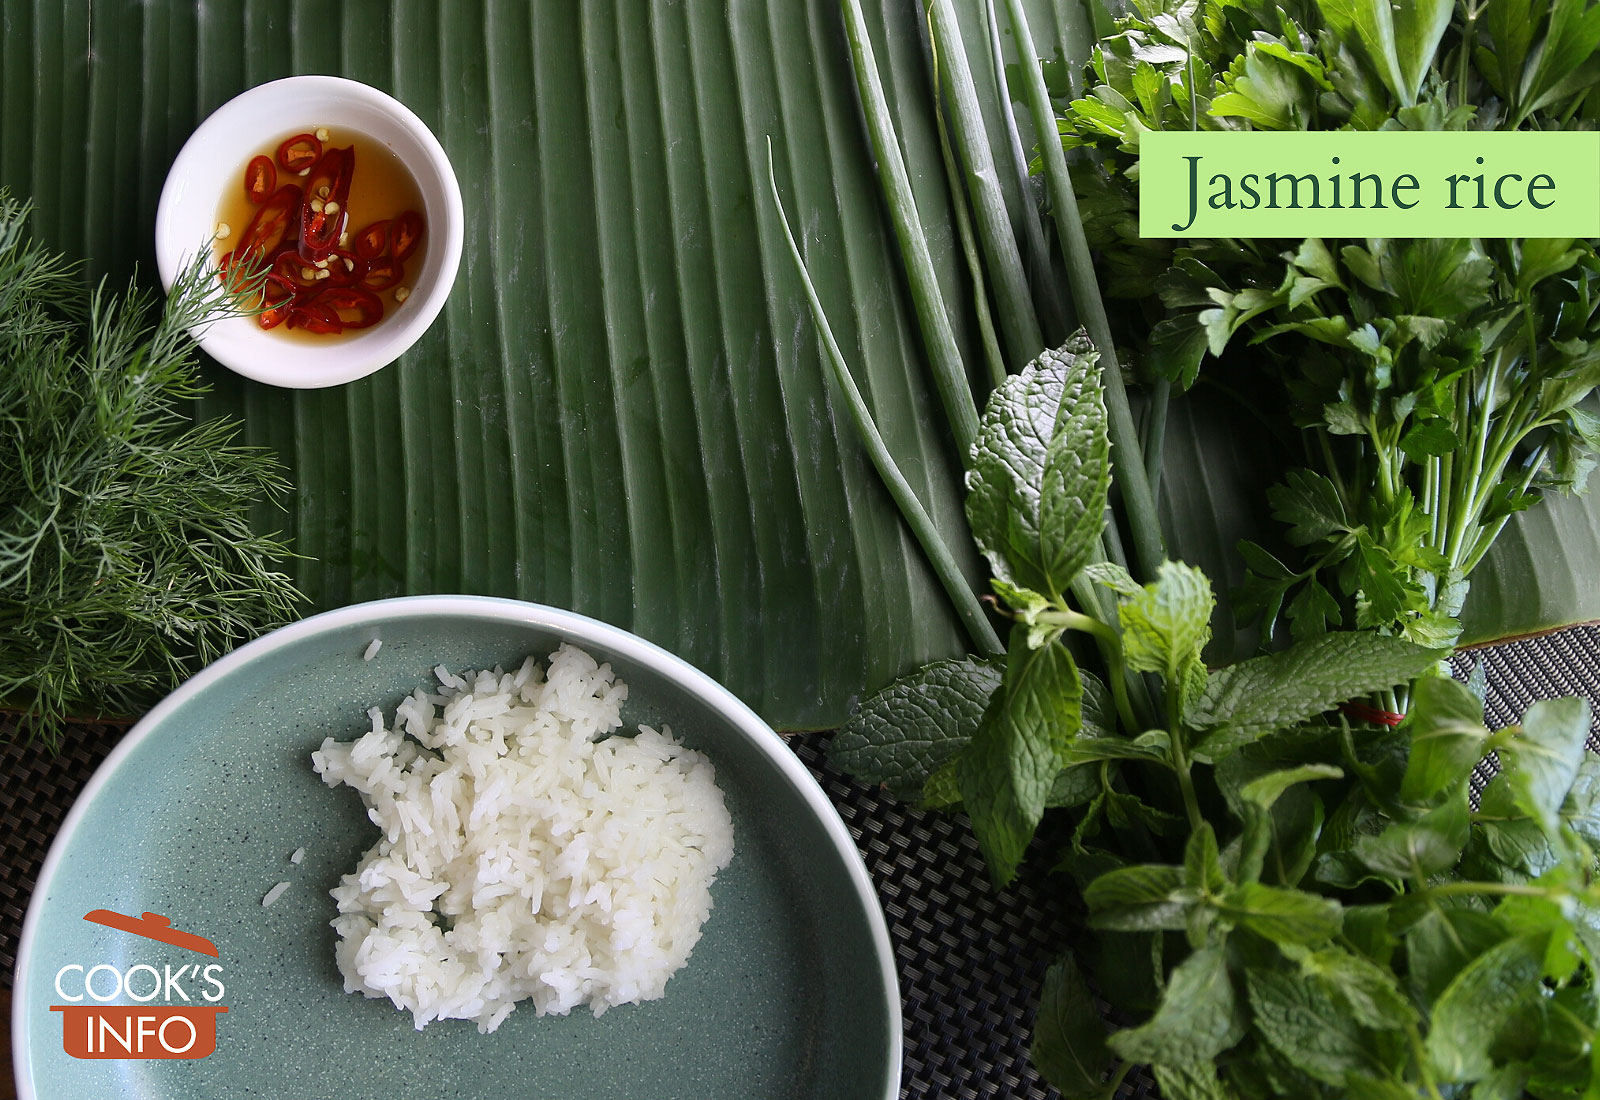 A serving of cooked jasmine rice